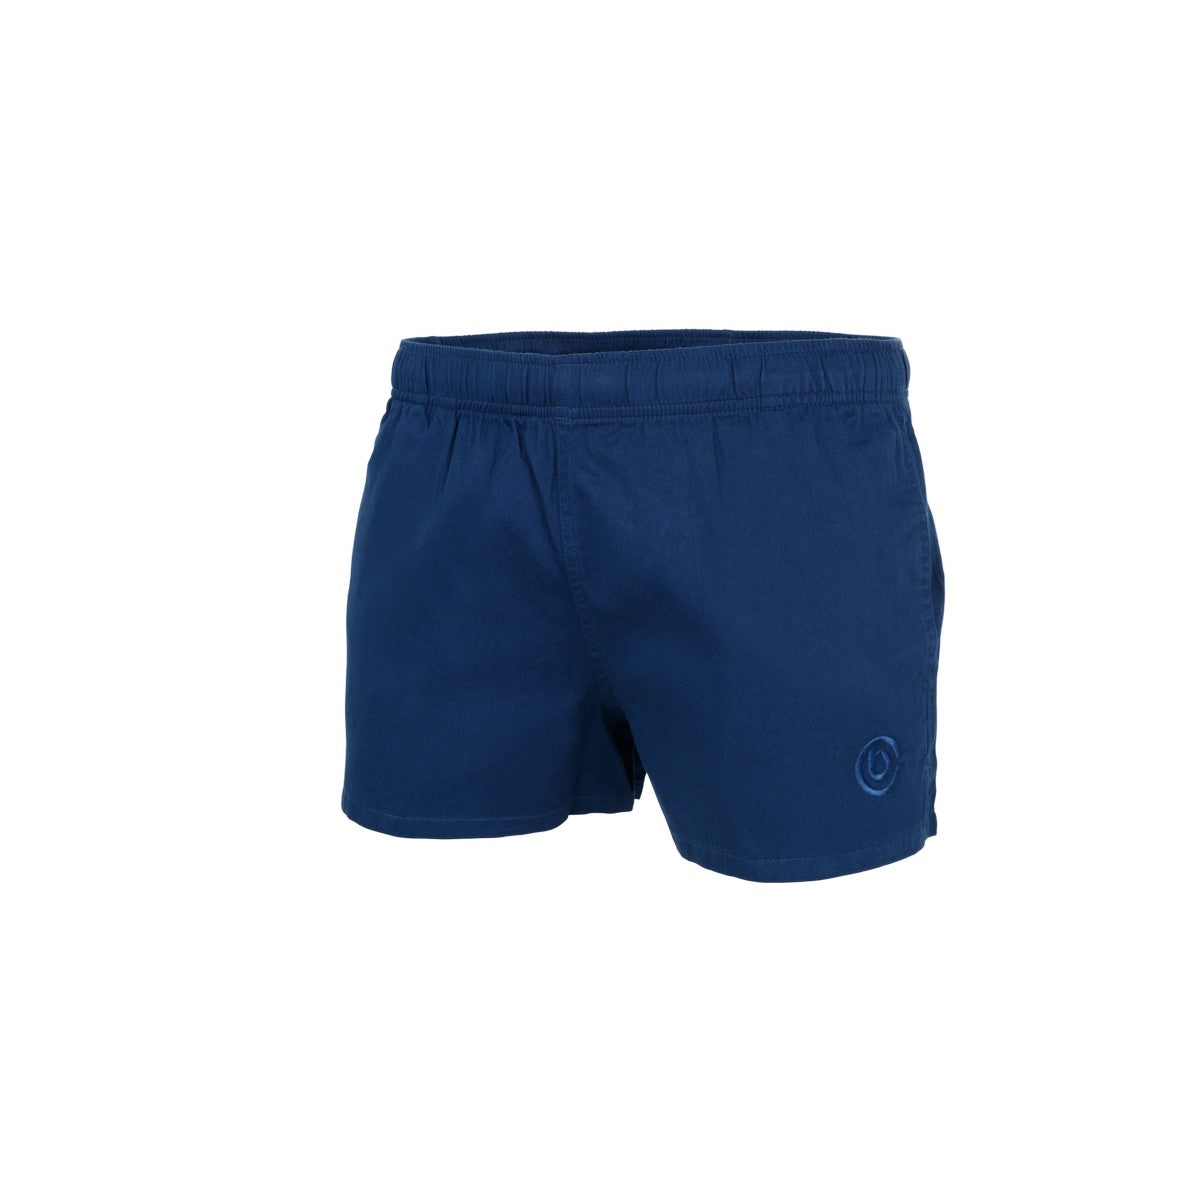 Image of Betacraft Sport Short - Mid Length